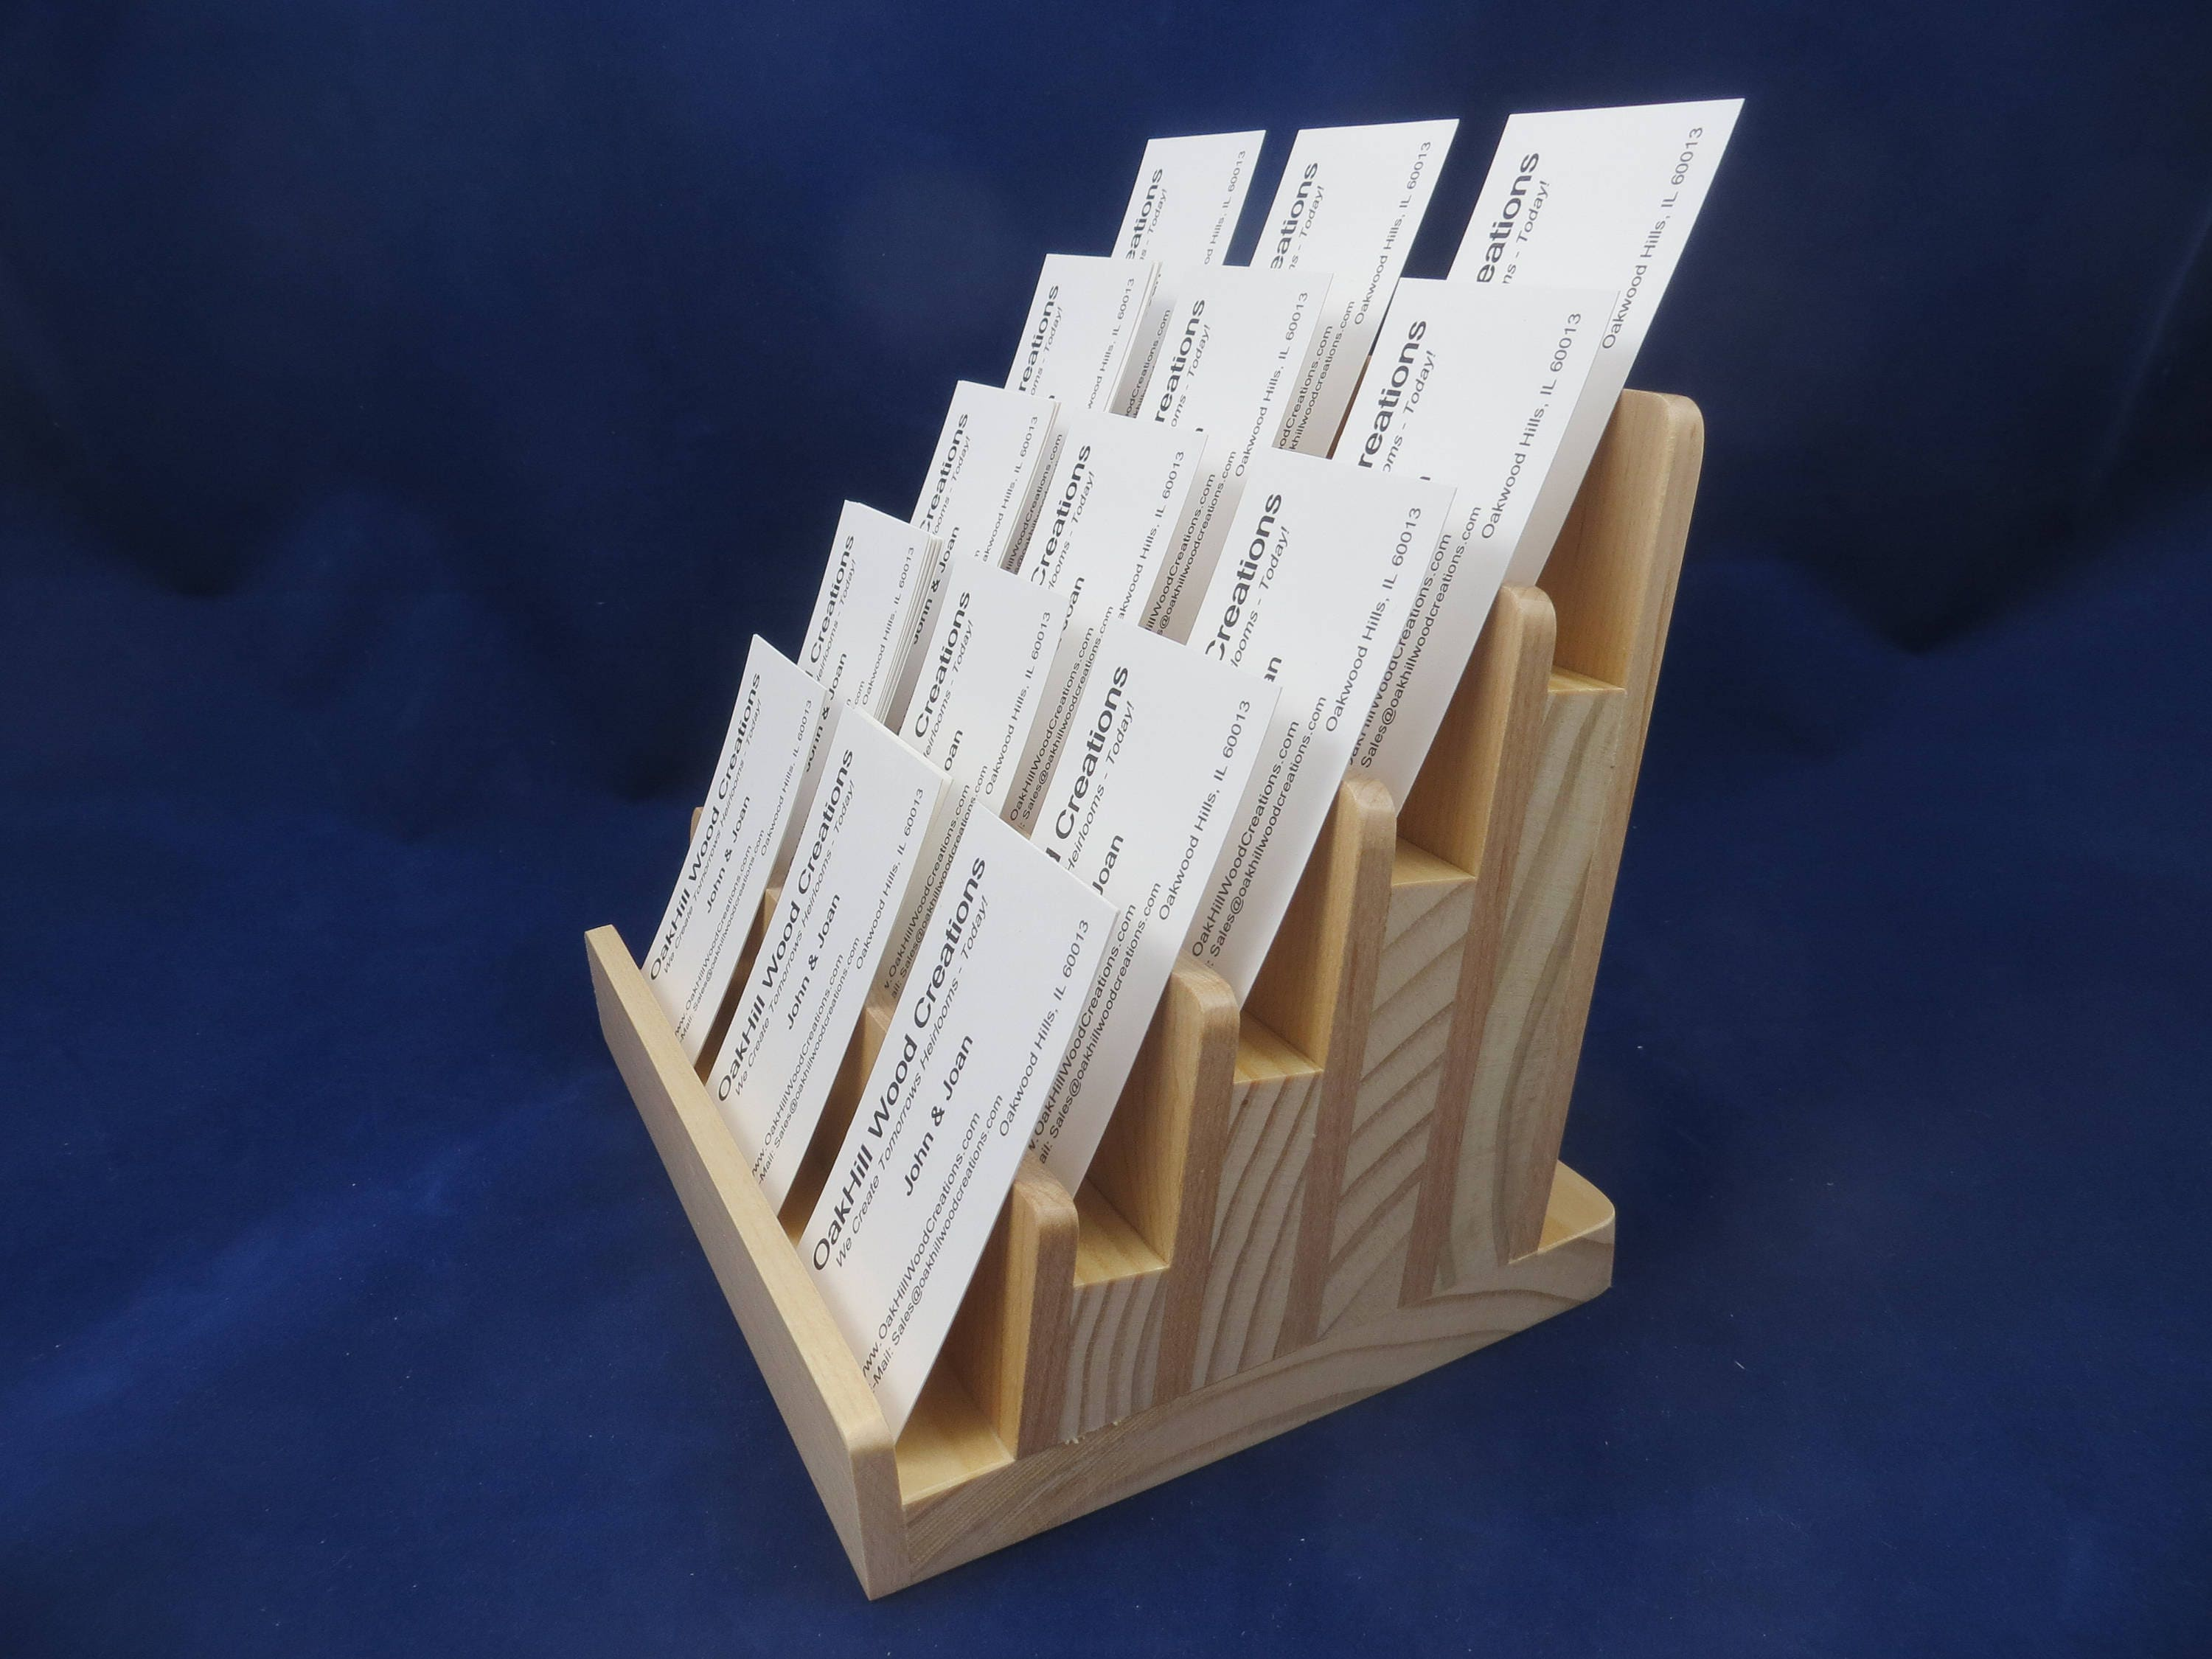 Multiple Business Card Holder 5 Tier Wood Display Vertical